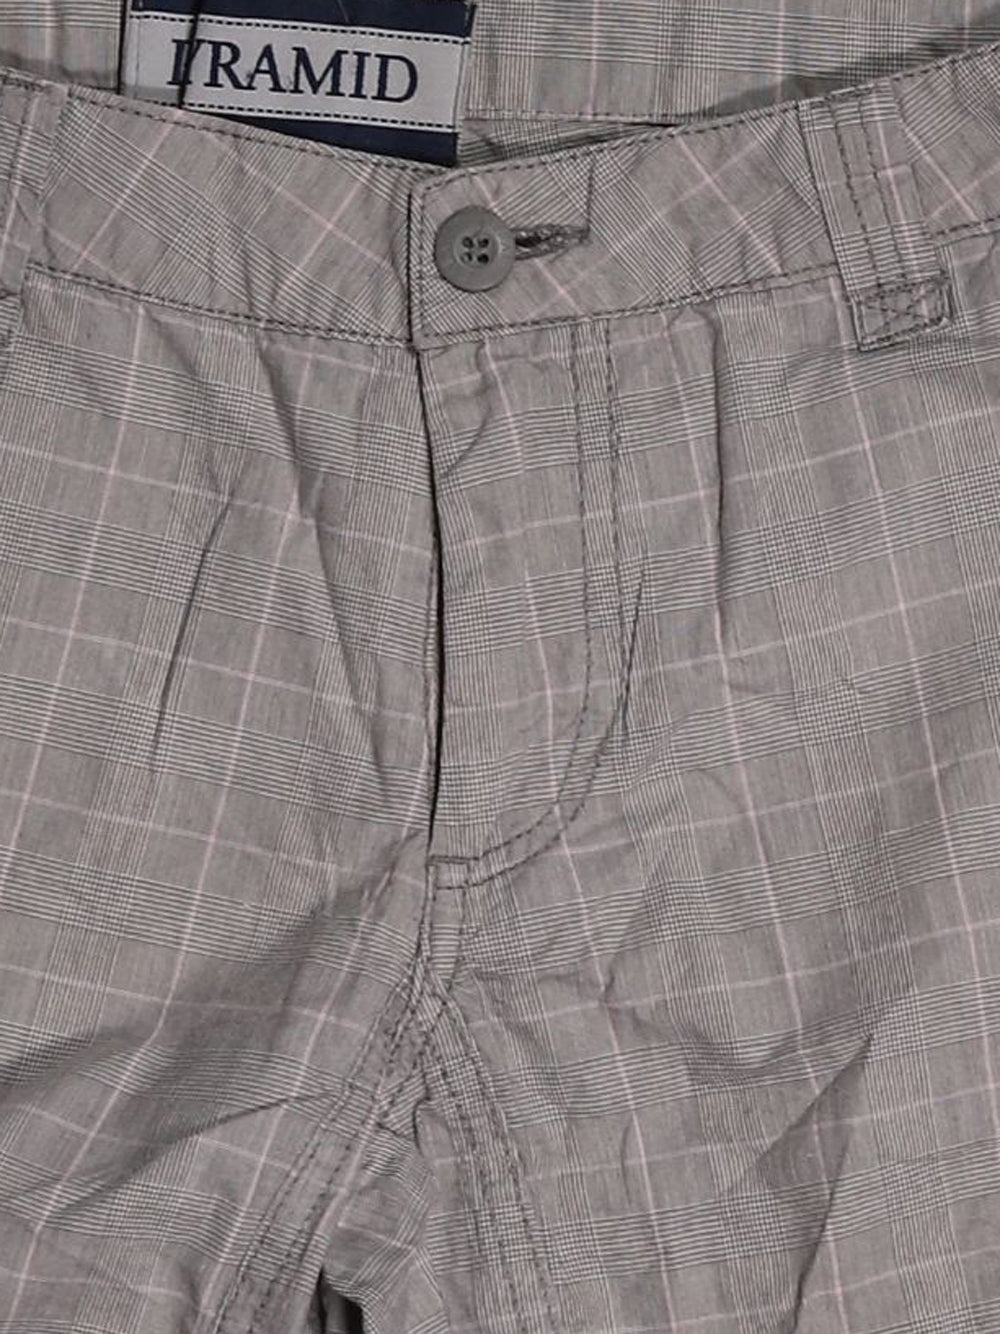 Detail photo of Preloved Pyramid Beige Man's shorts - size 32/XXS